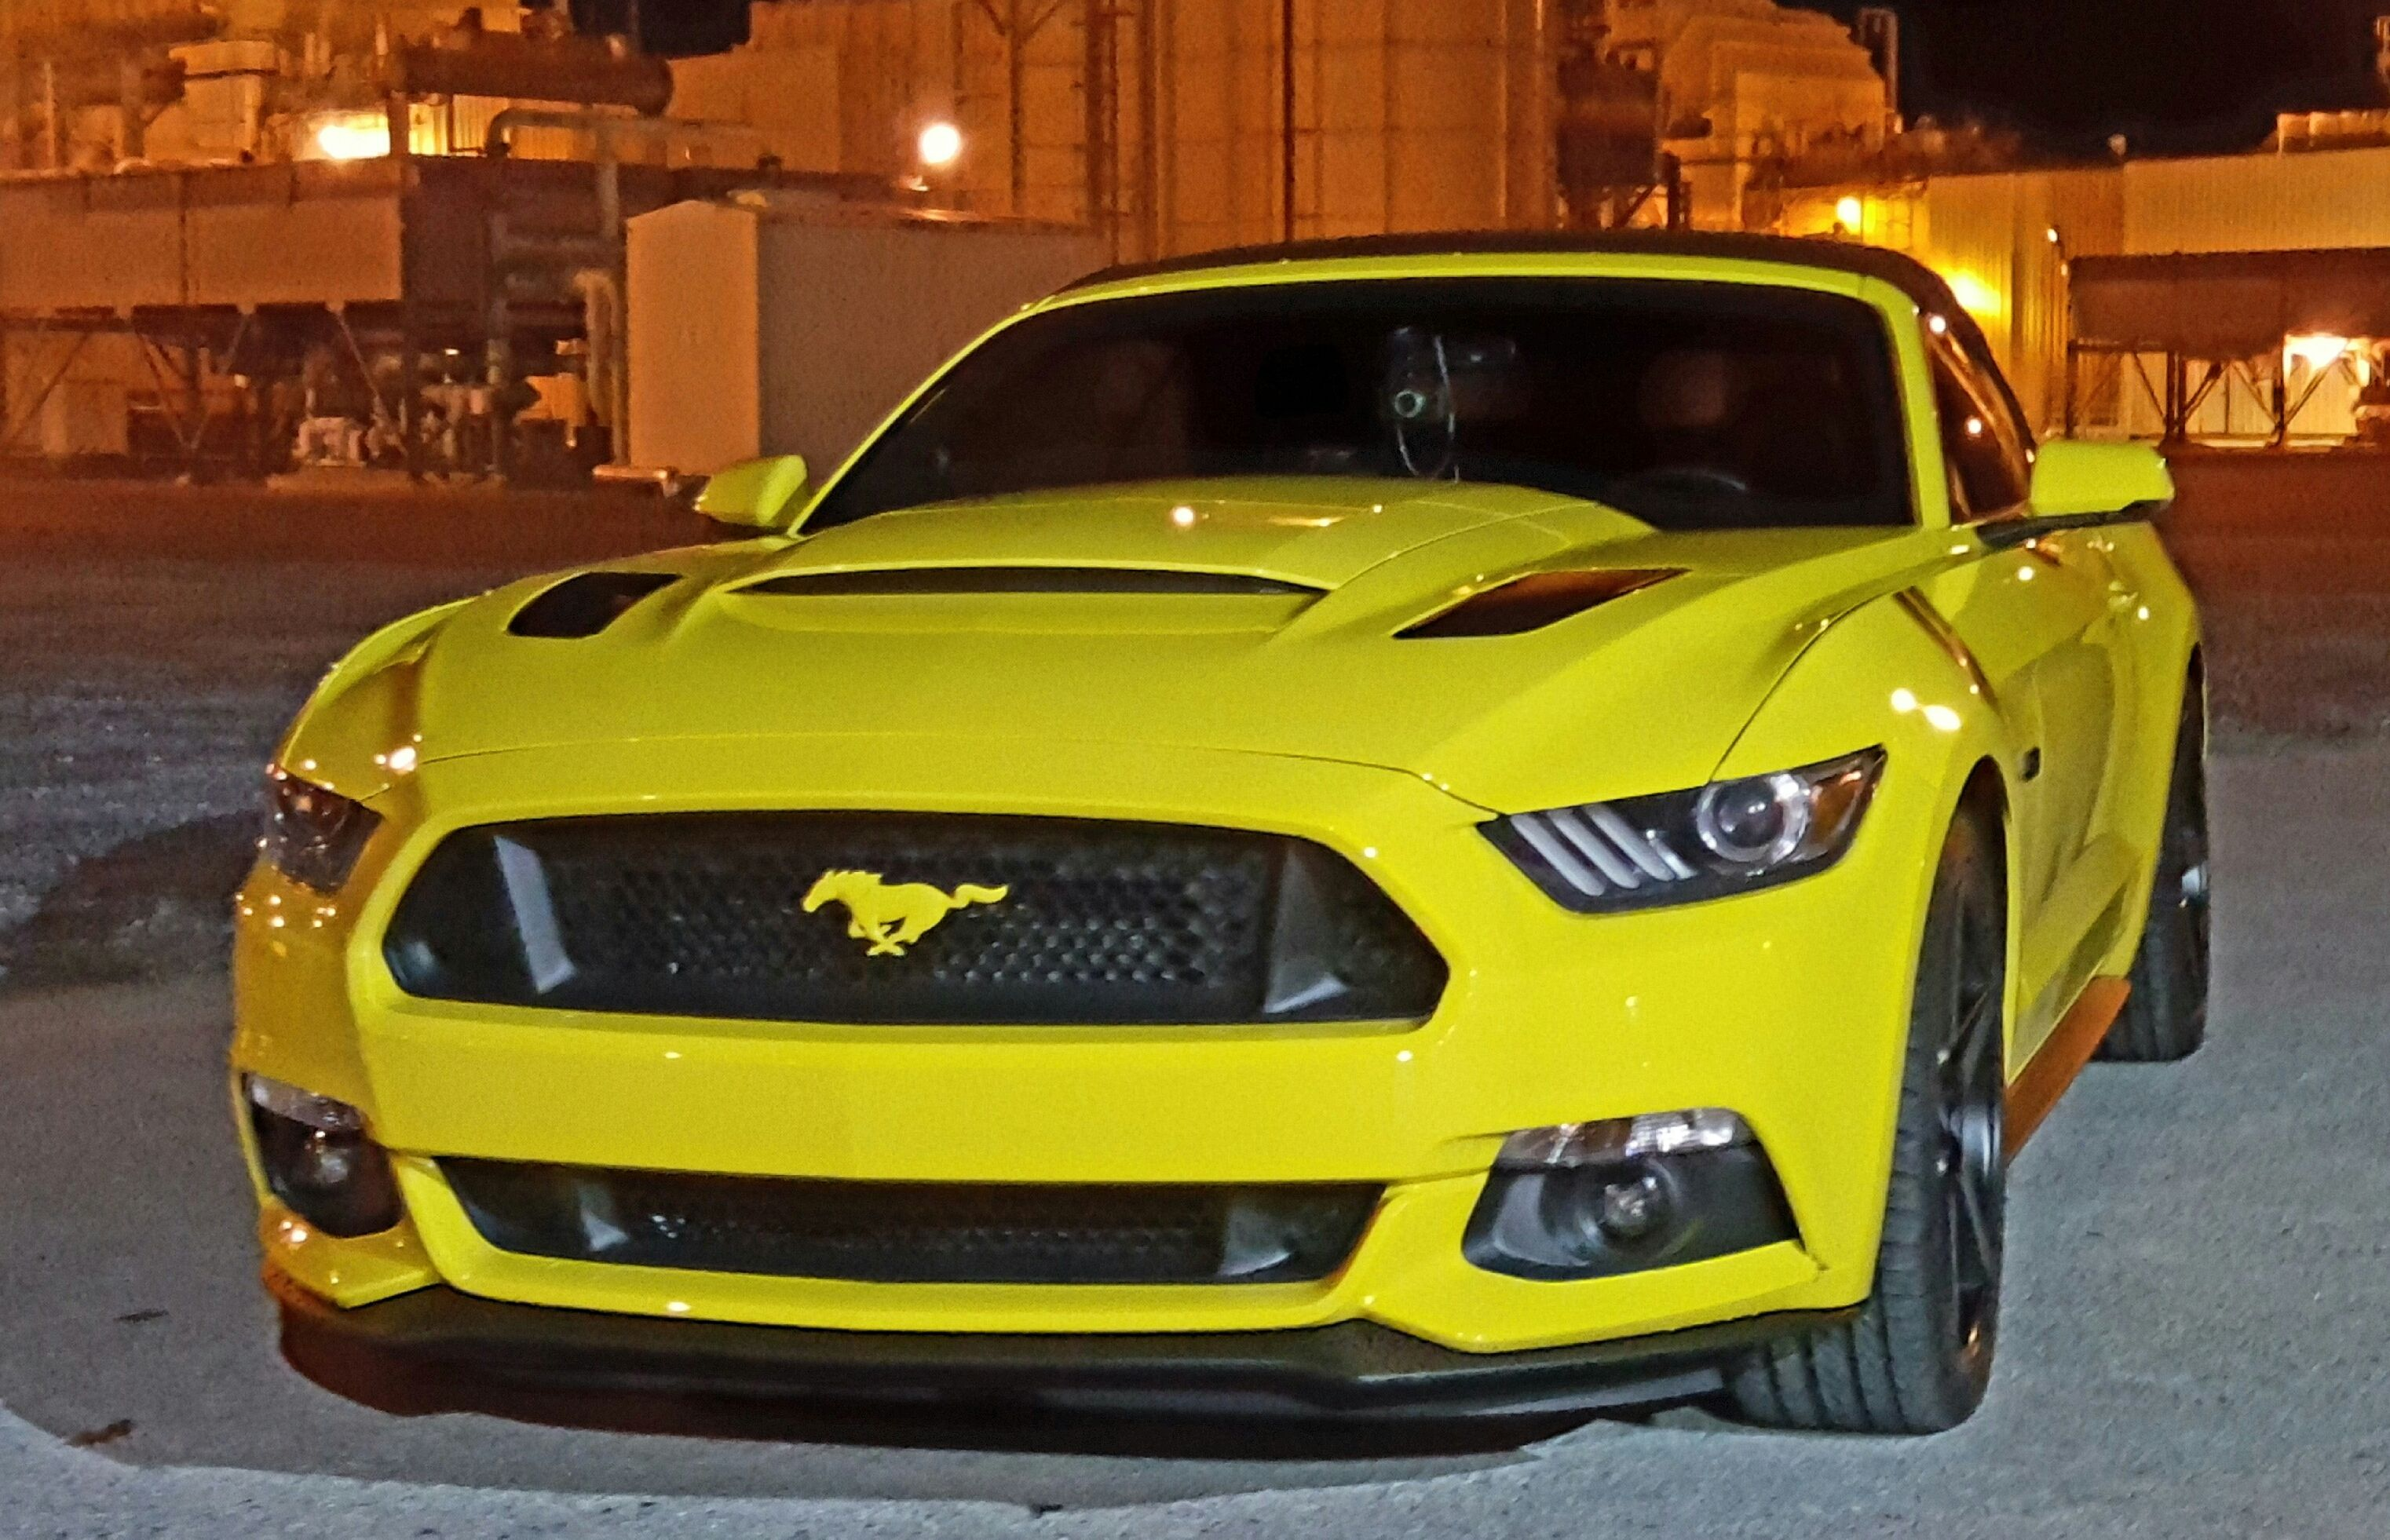 Look At The Color Matching Emblems The Roush Hood Scoop On